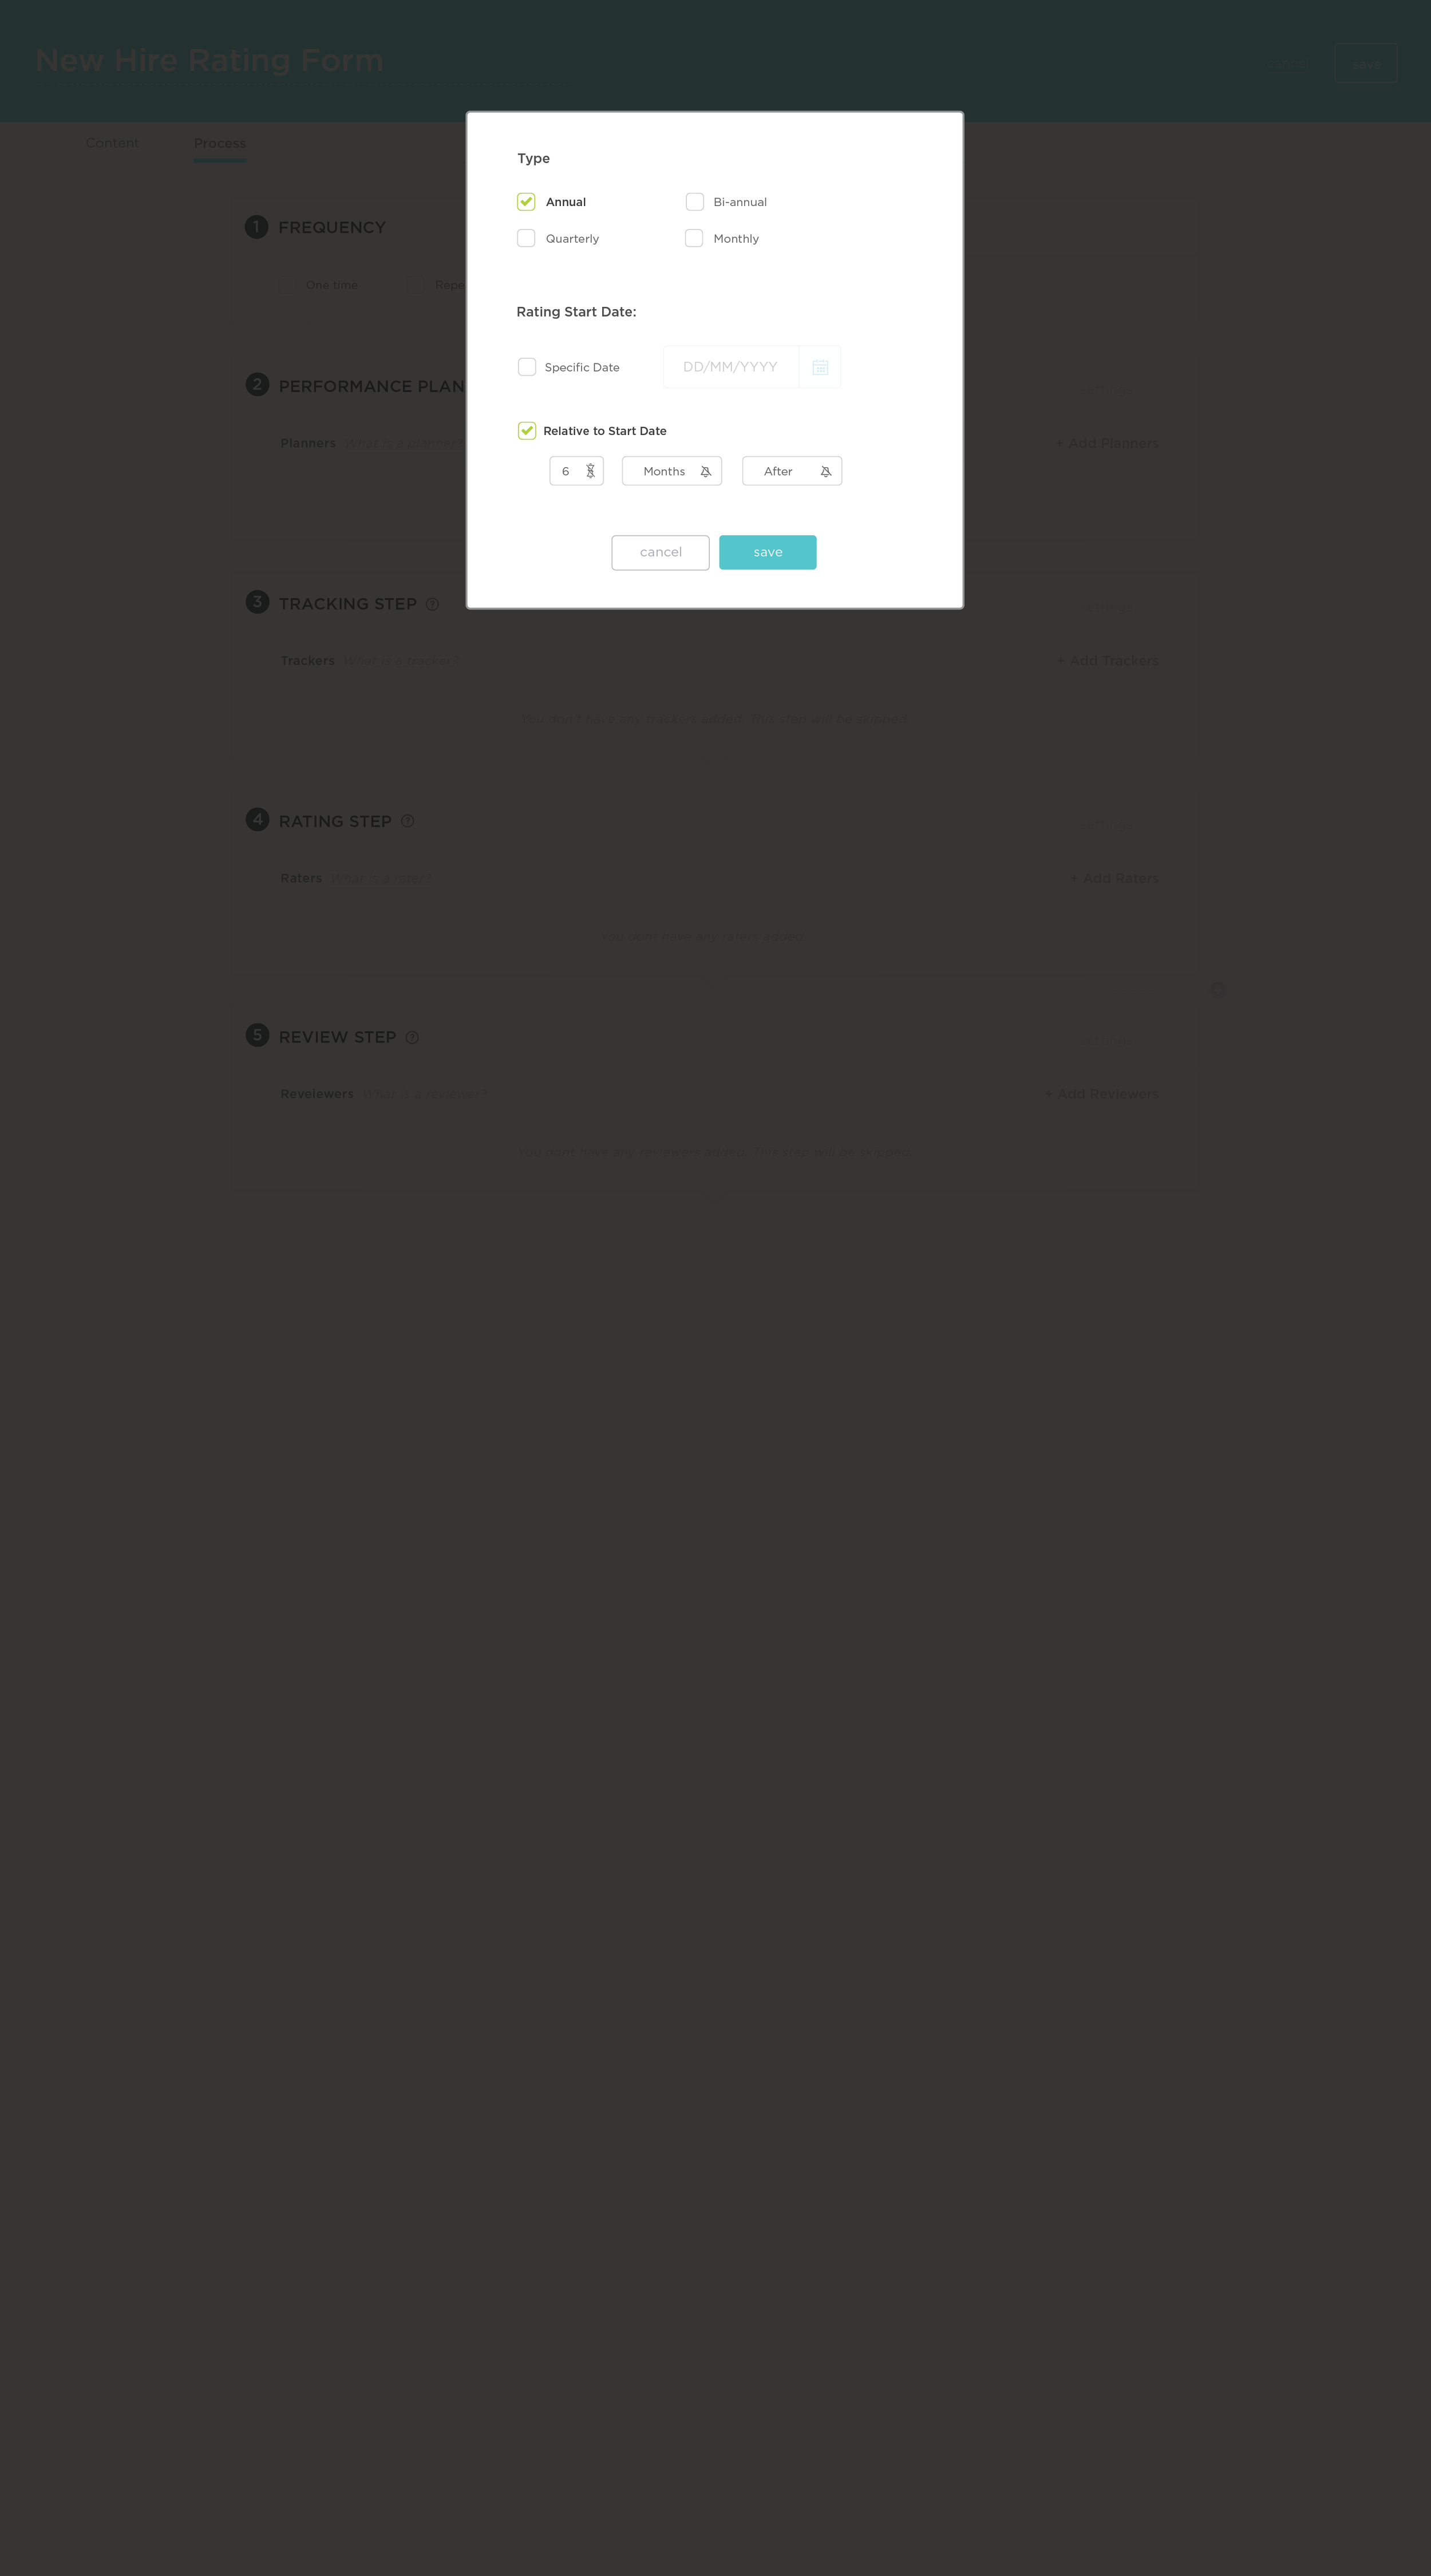 Invision_Pe_rating-form-process_03_4.png